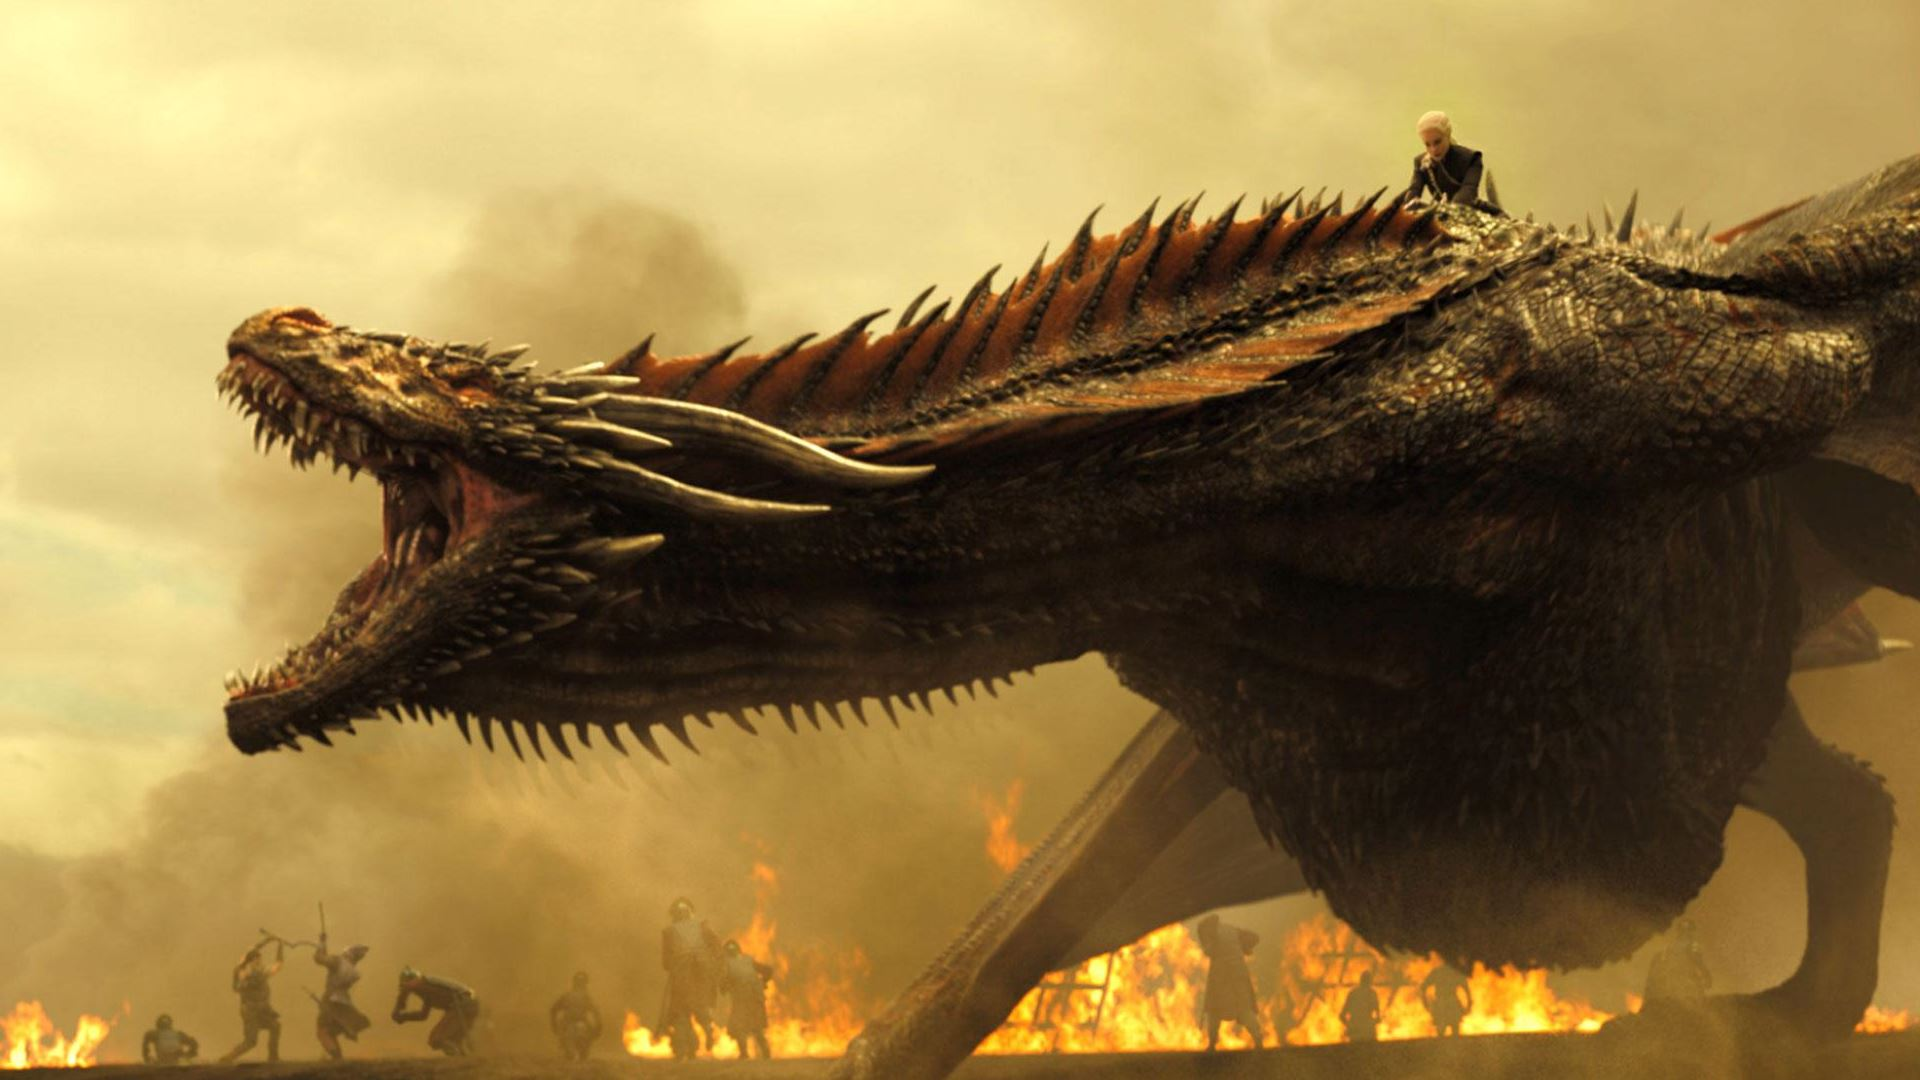 Game Of Thrones Season 8 16 Watch Here Without Ads And Downloads